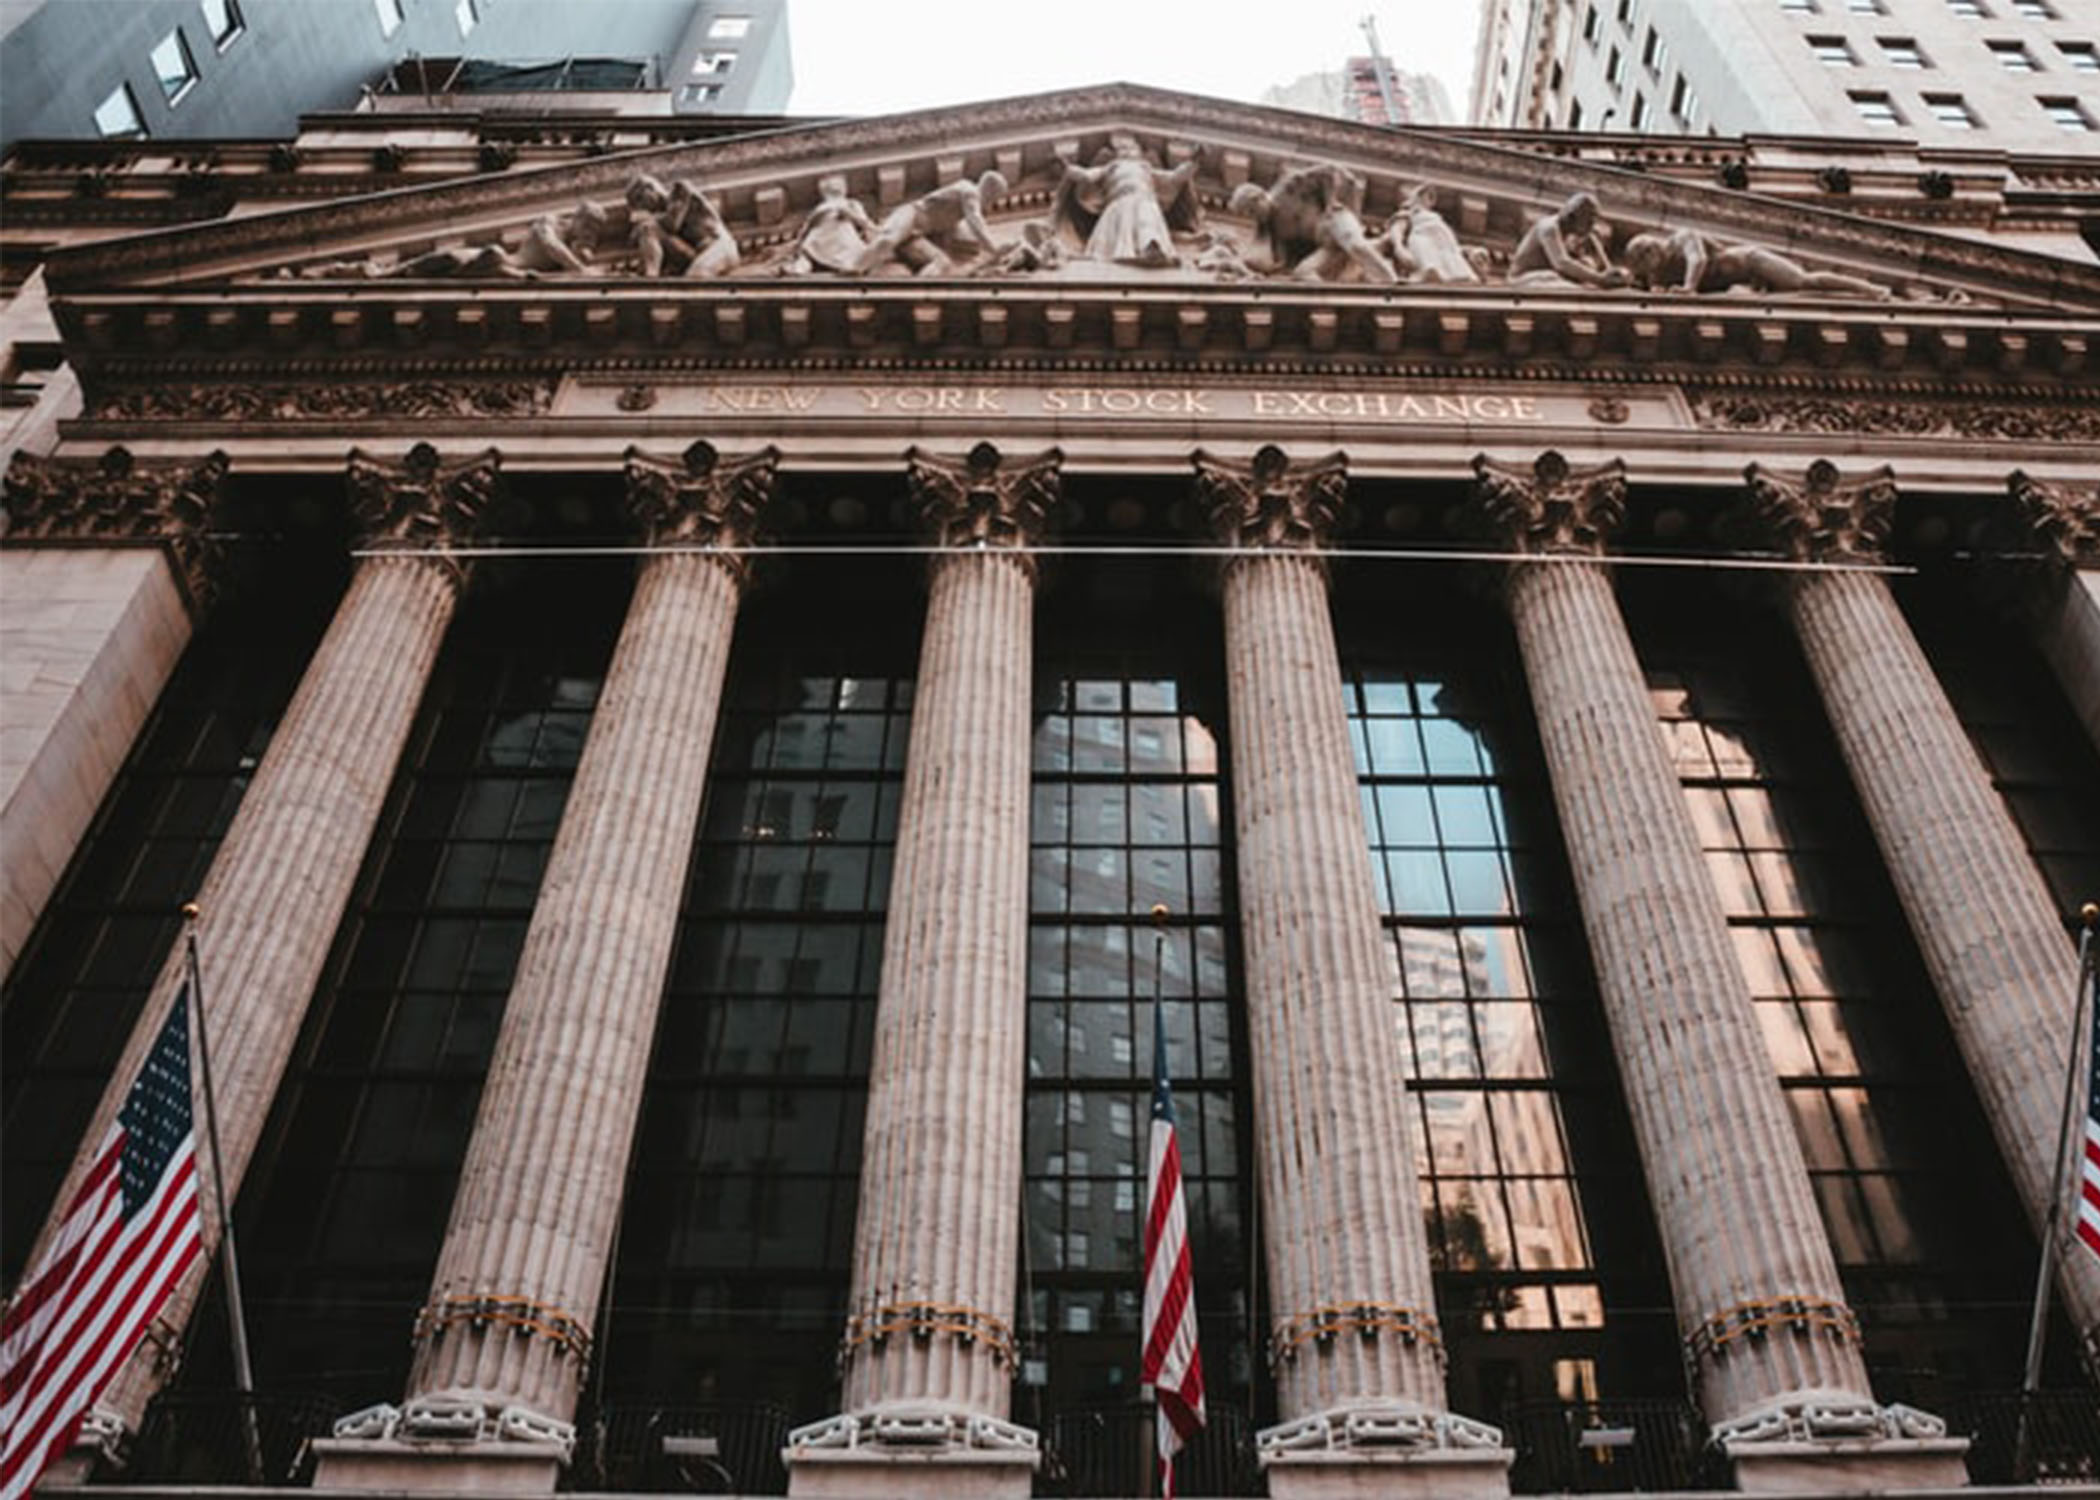 Front columns of the New York Stock Exchange building.